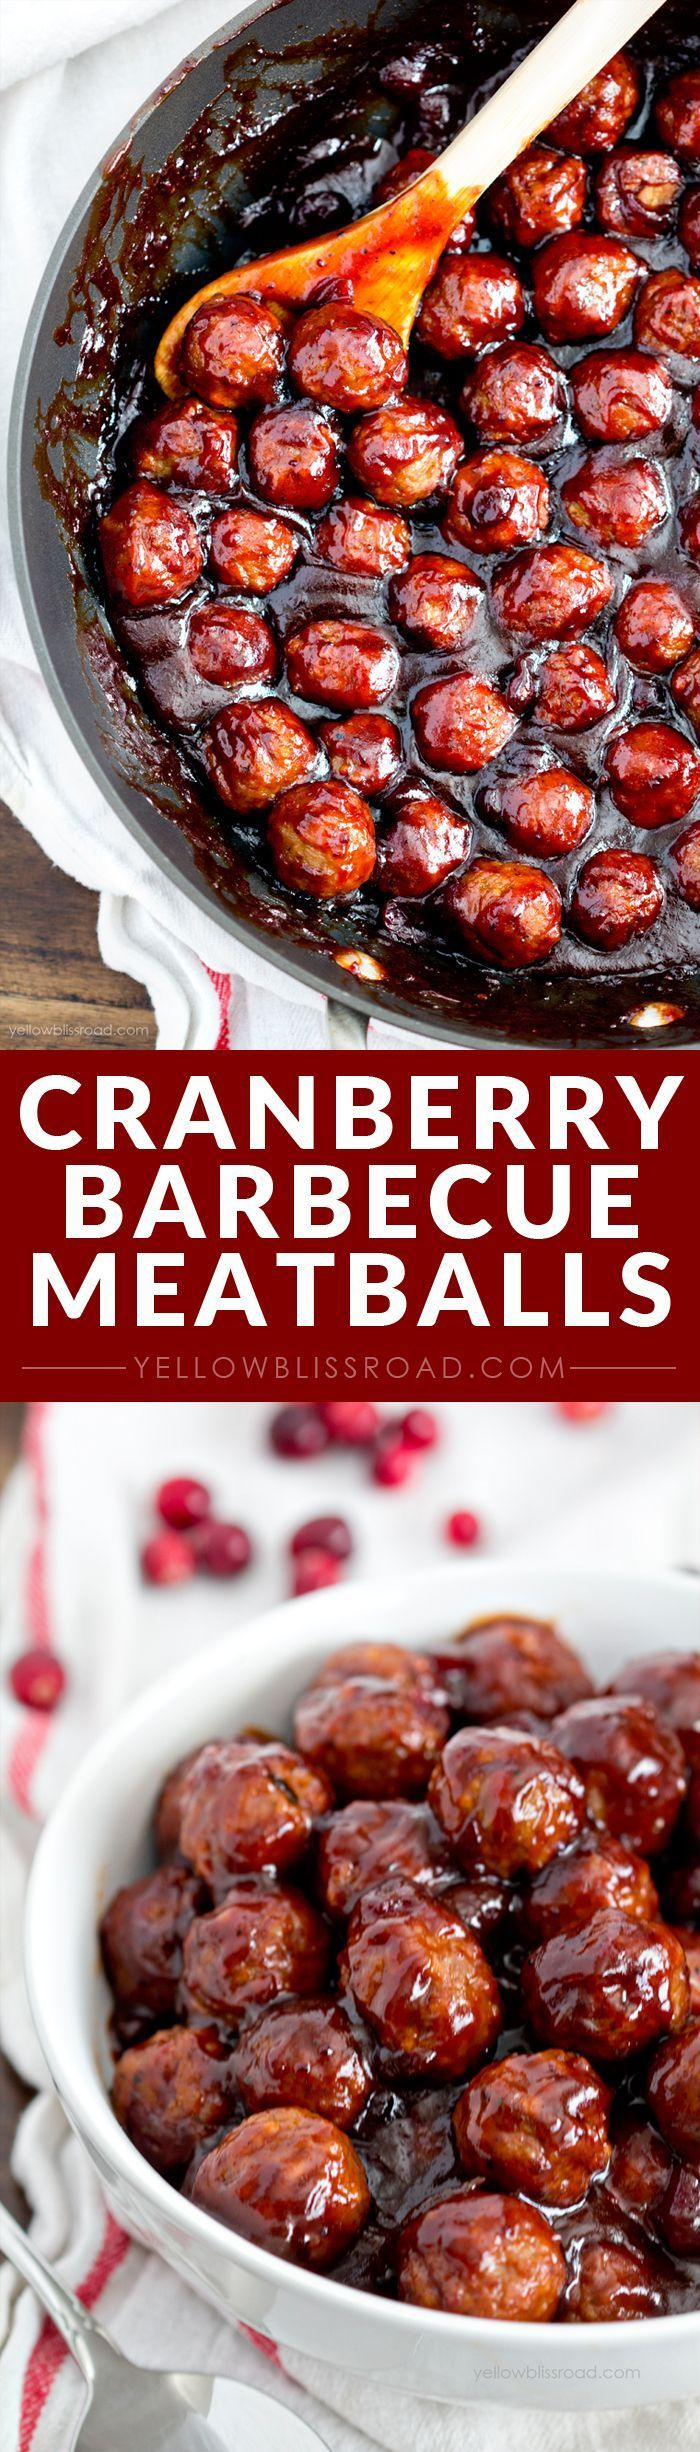 Spicy Cranberry Barbecue Meatballs | Recipe | For the, Appetizer ...